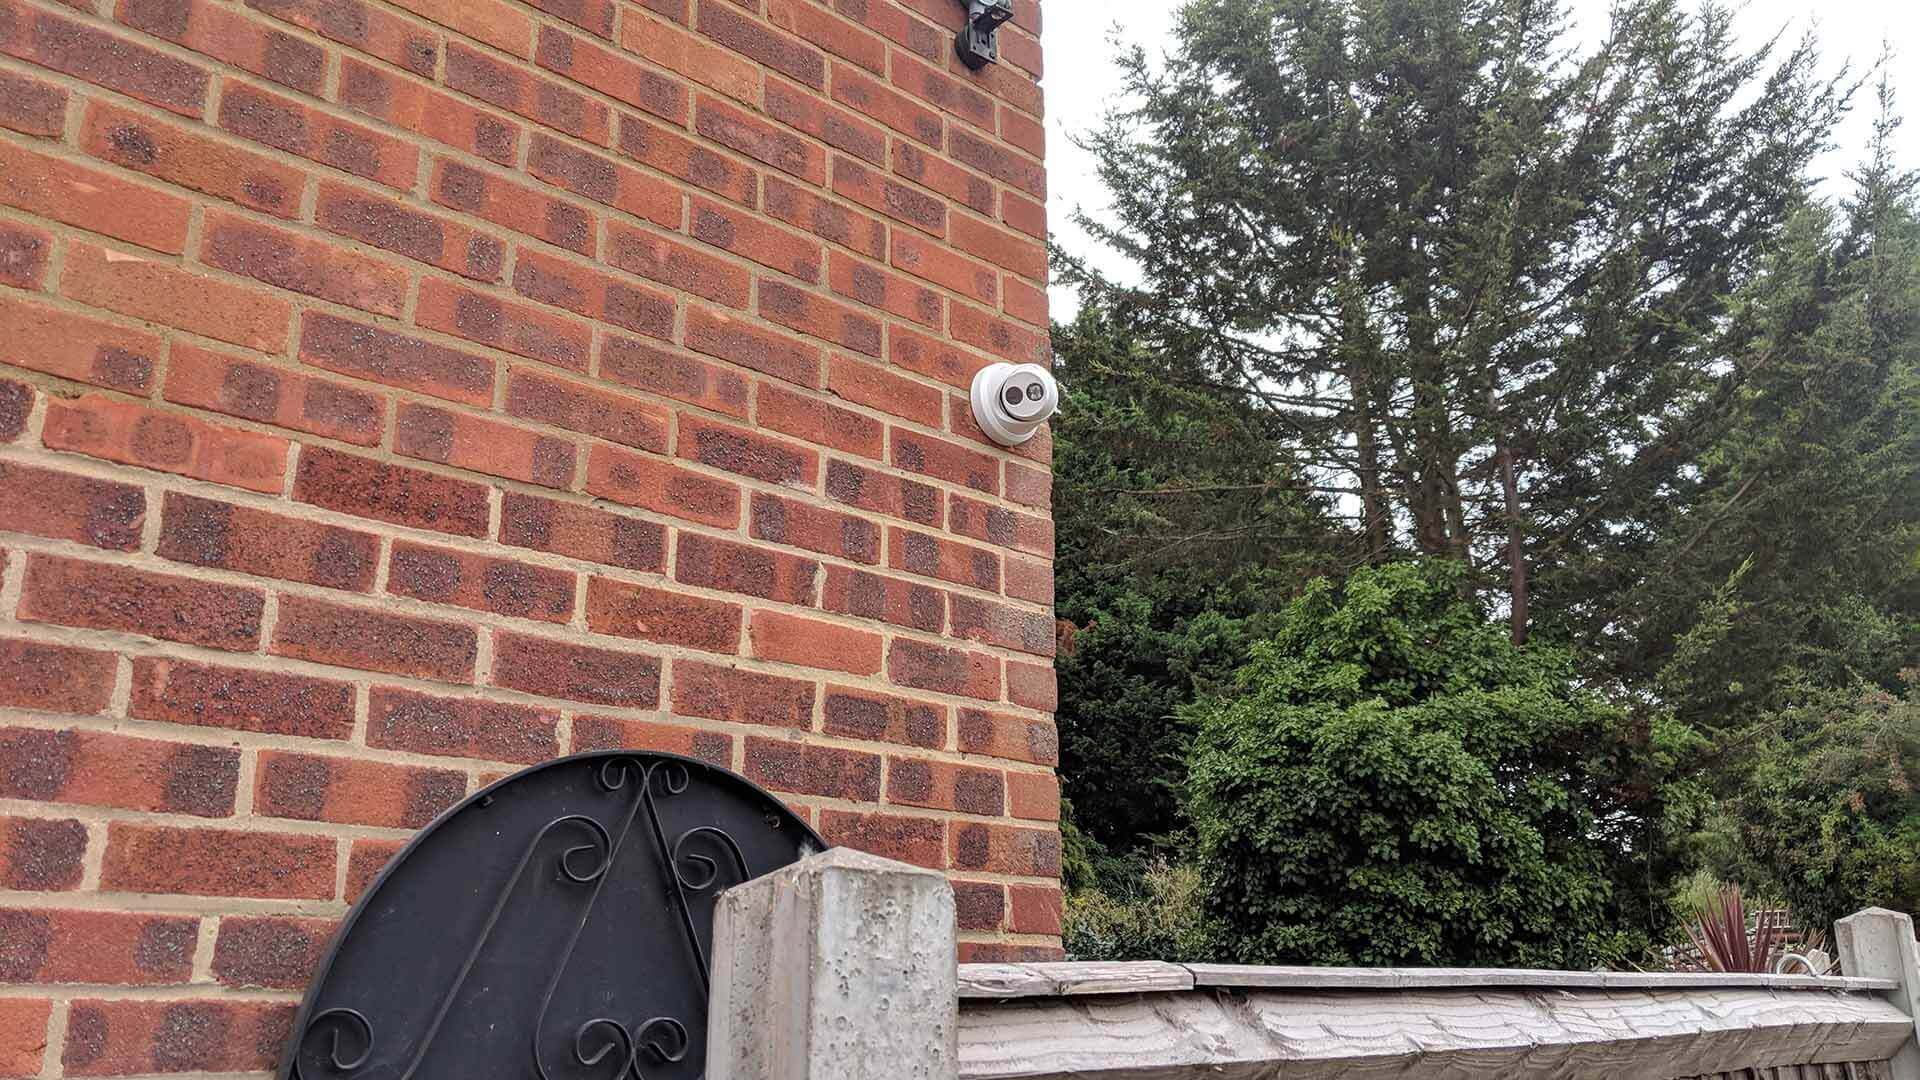 CCTV Installation in Abridge